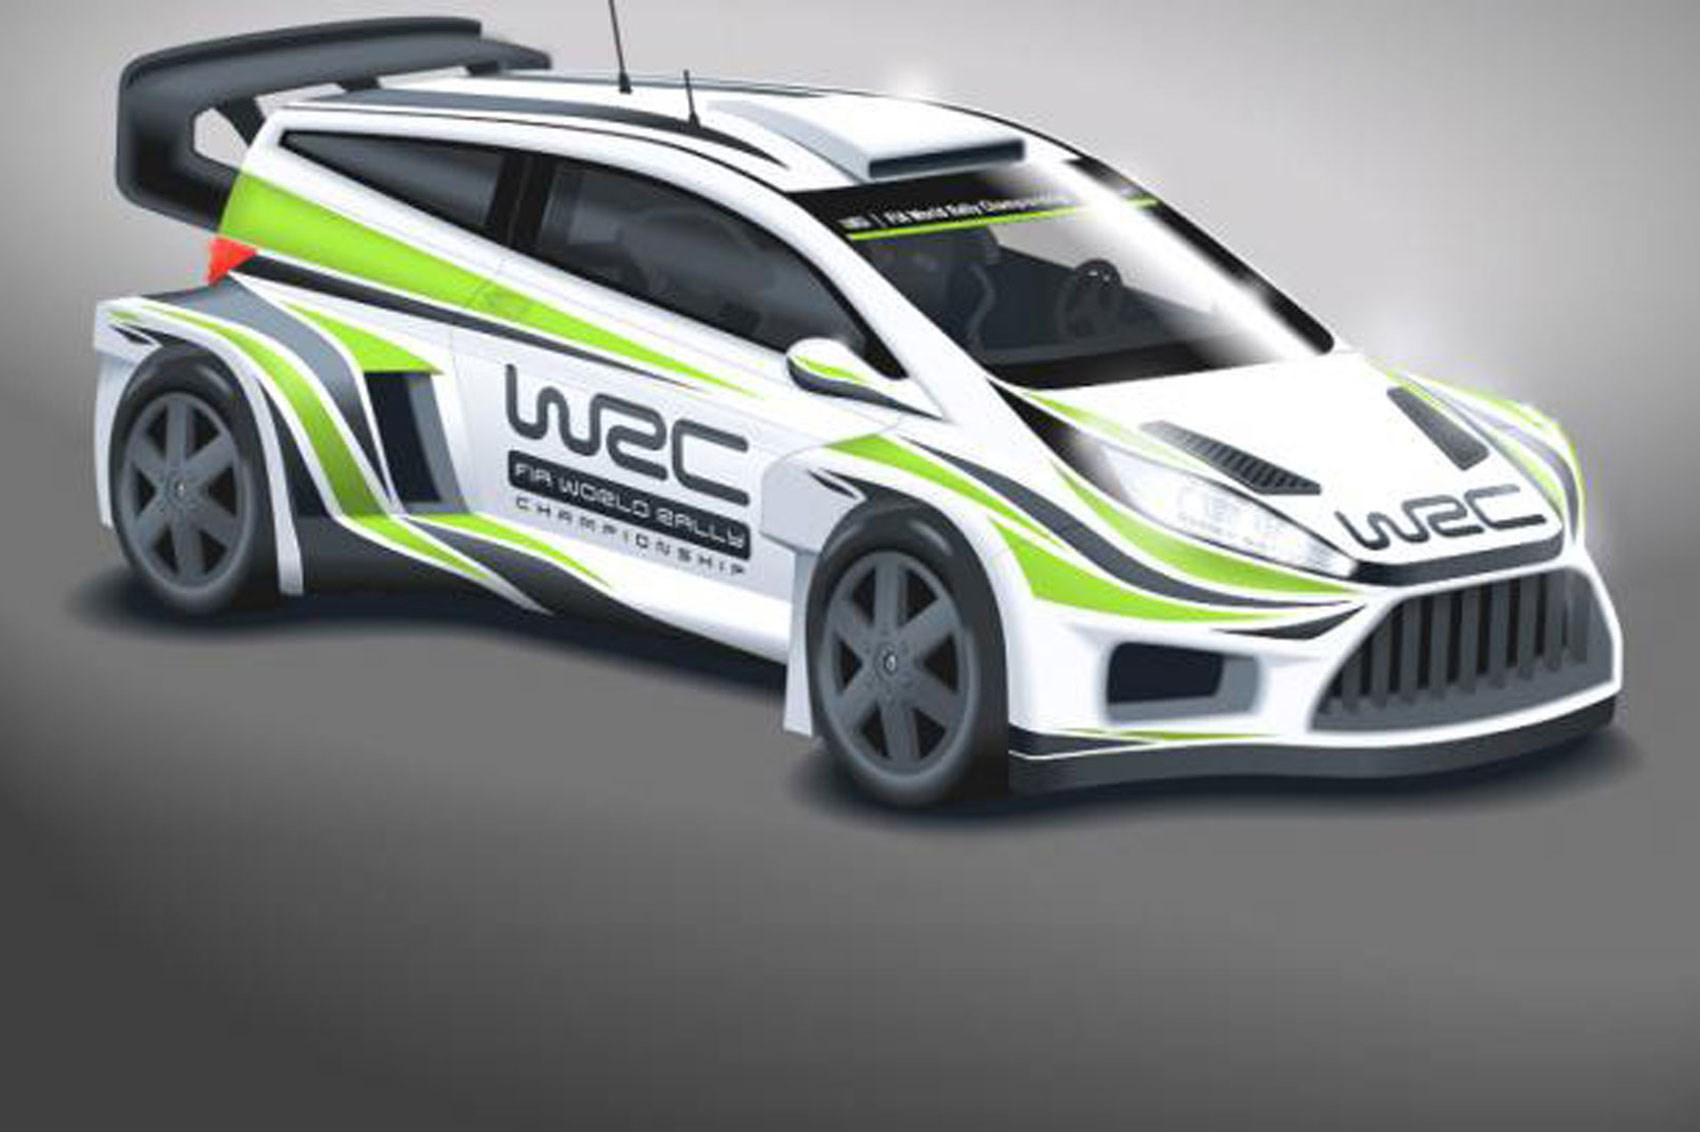 Ultrablogus  Stunning Wild New Look For Wrc Cars In  By Car Magazine With Great Wrc Cars Will Get Wider Bodies Bigger Wings And More Power For  With Amazing Wraith Interior Also S Max Dimensions Interior In Addition Touareg Interior And Alpina B Interior As Well As A Interior Additionally Corsa Vxr Interior From Carmagazinecouk With Ultrablogus  Great Wild New Look For Wrc Cars In  By Car Magazine With Amazing Wrc Cars Will Get Wider Bodies Bigger Wings And More Power For  And Stunning Wraith Interior Also S Max Dimensions Interior In Addition Touareg Interior From Carmagazinecouk